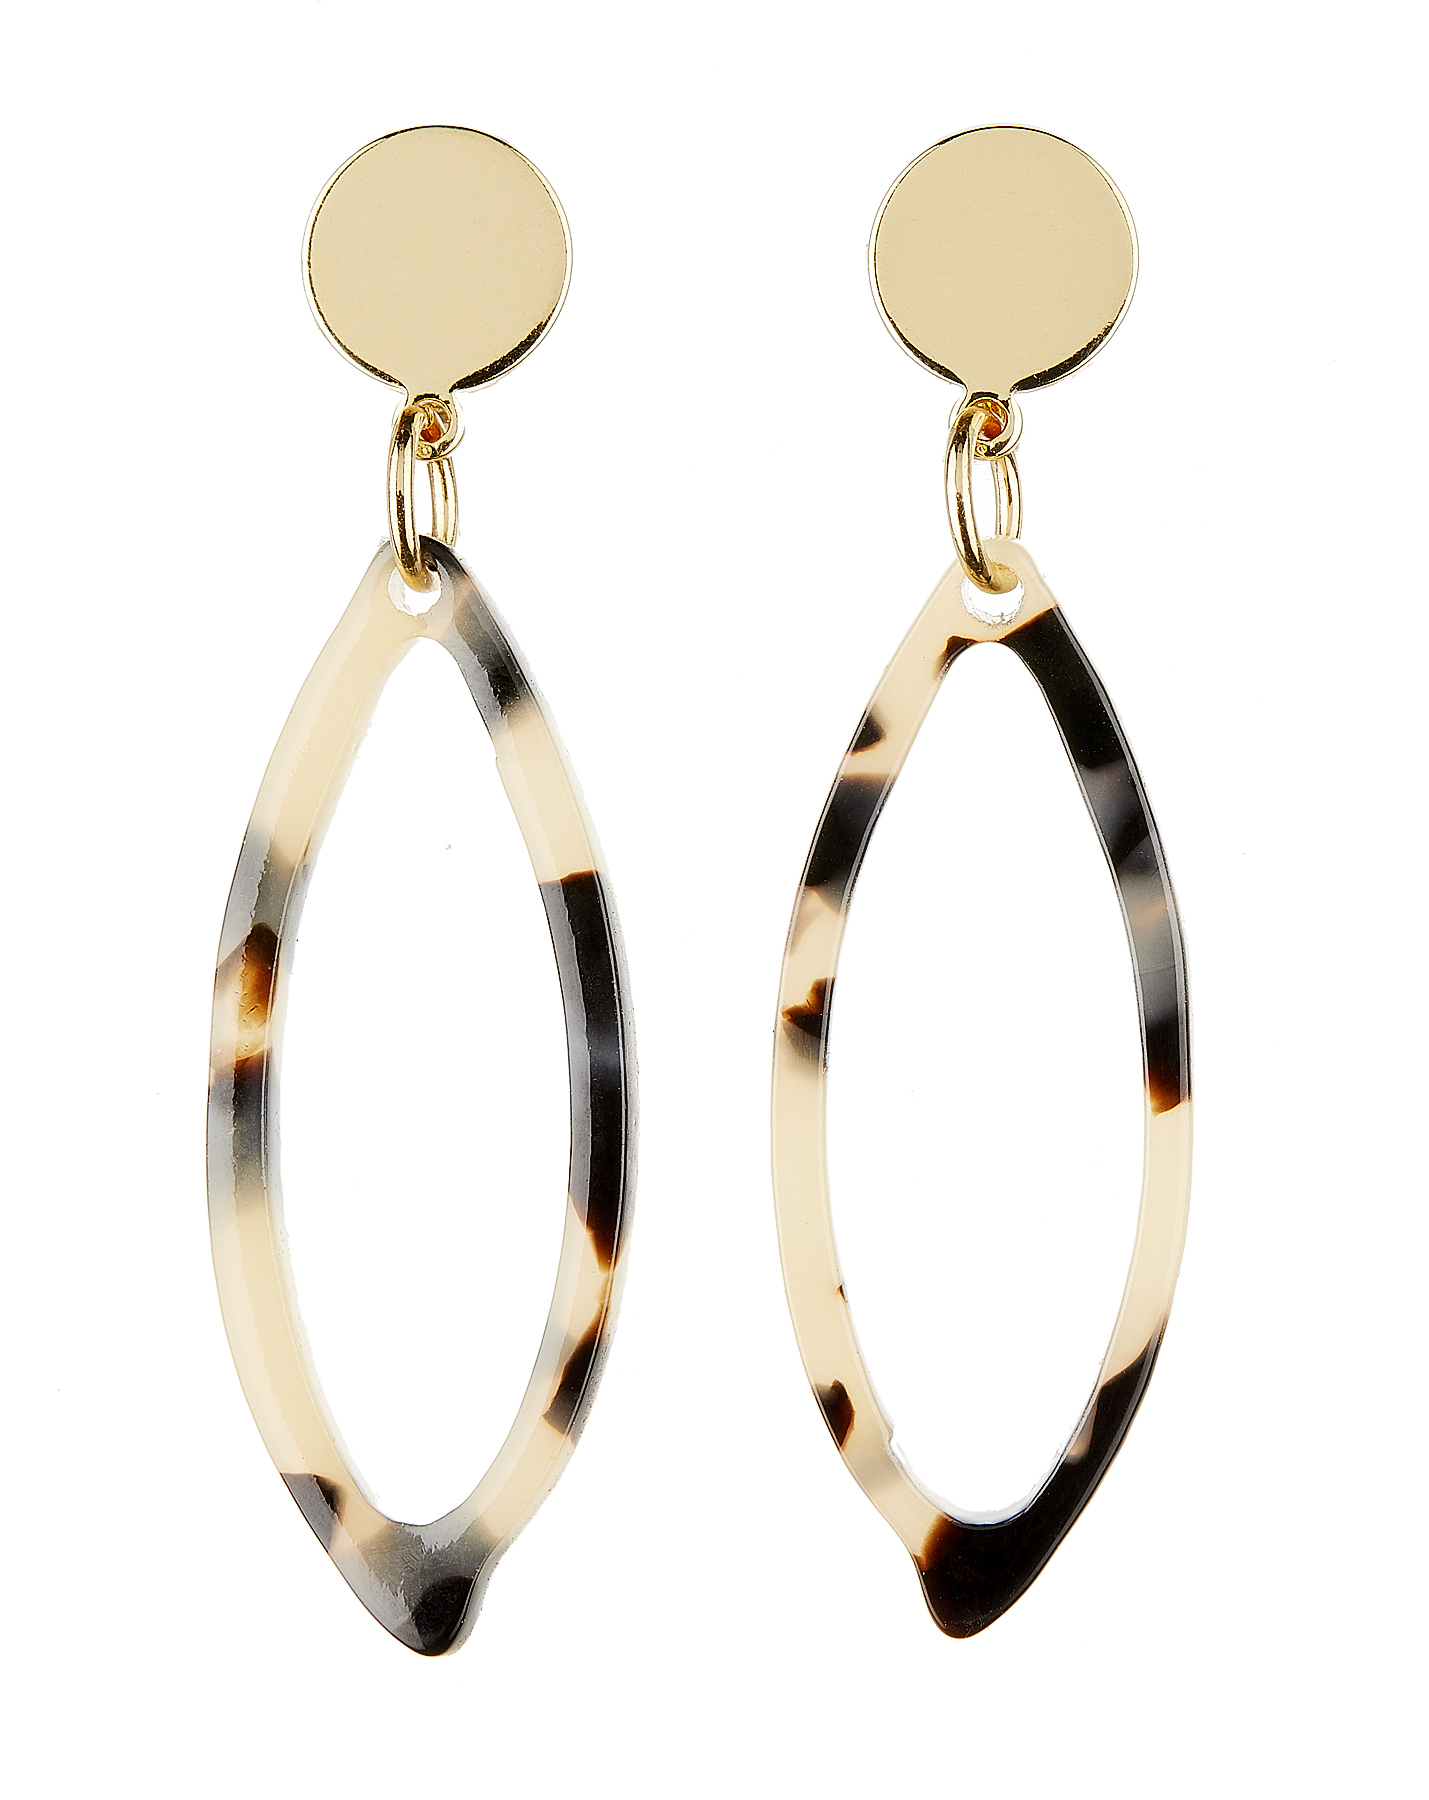 Clip On Earrings - Ebbi B - gold drop earring with brown tortoise shell acrylic